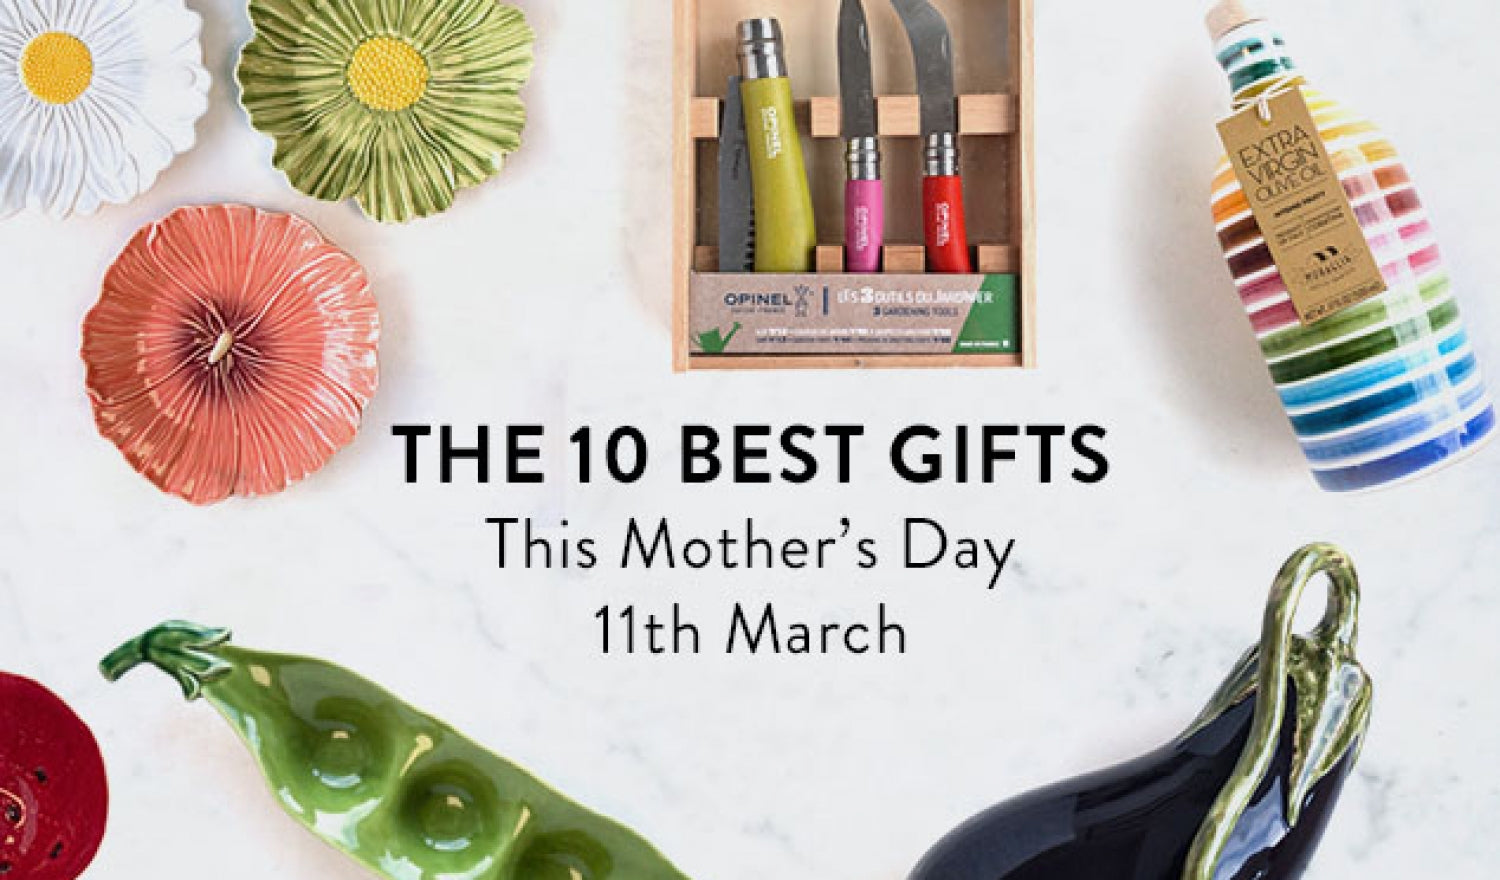 The 10 Best Gifts This Mother's Day